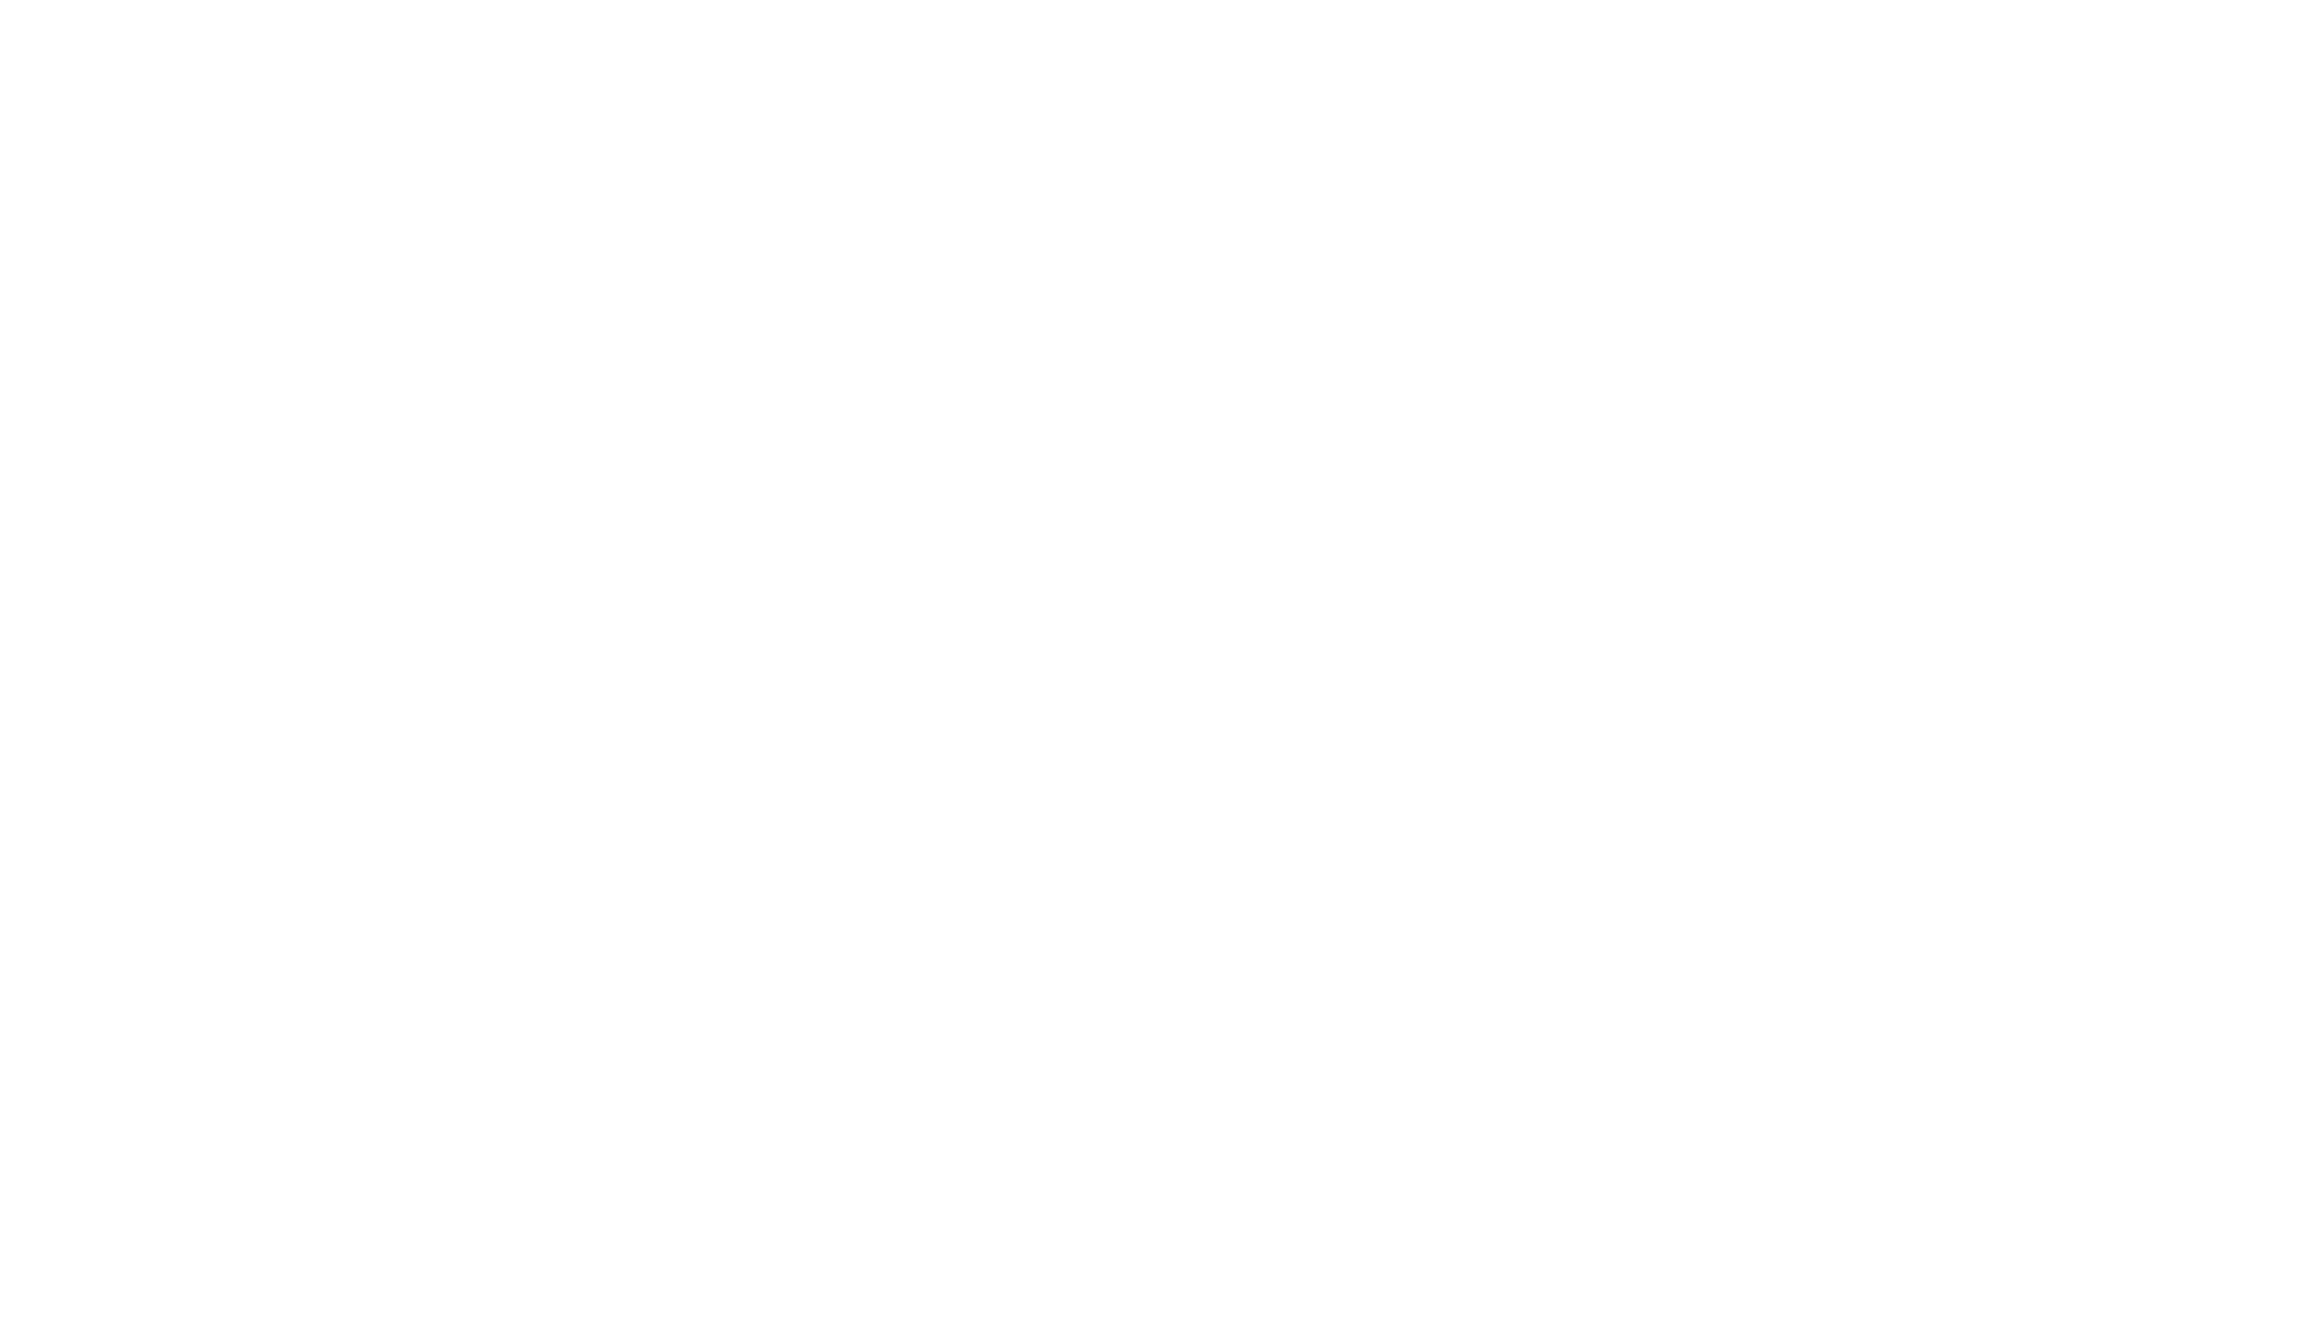 Further Afield Travel and Tours